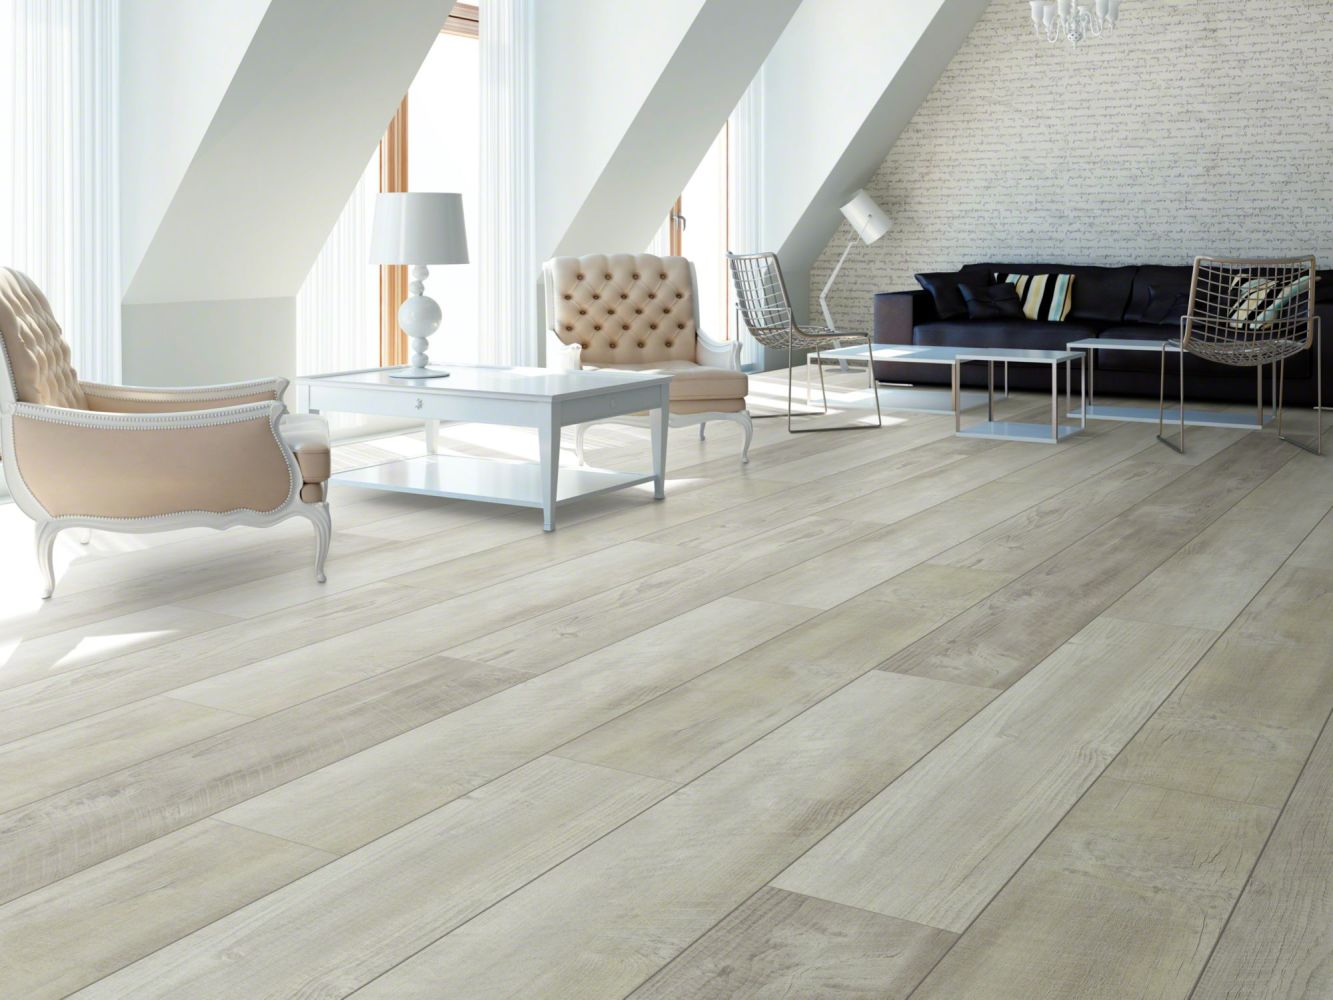 Shaw Floors Resilient Property Solutions Moonlit Pine 720c Plus Reclaimed Pine 00166_514RG